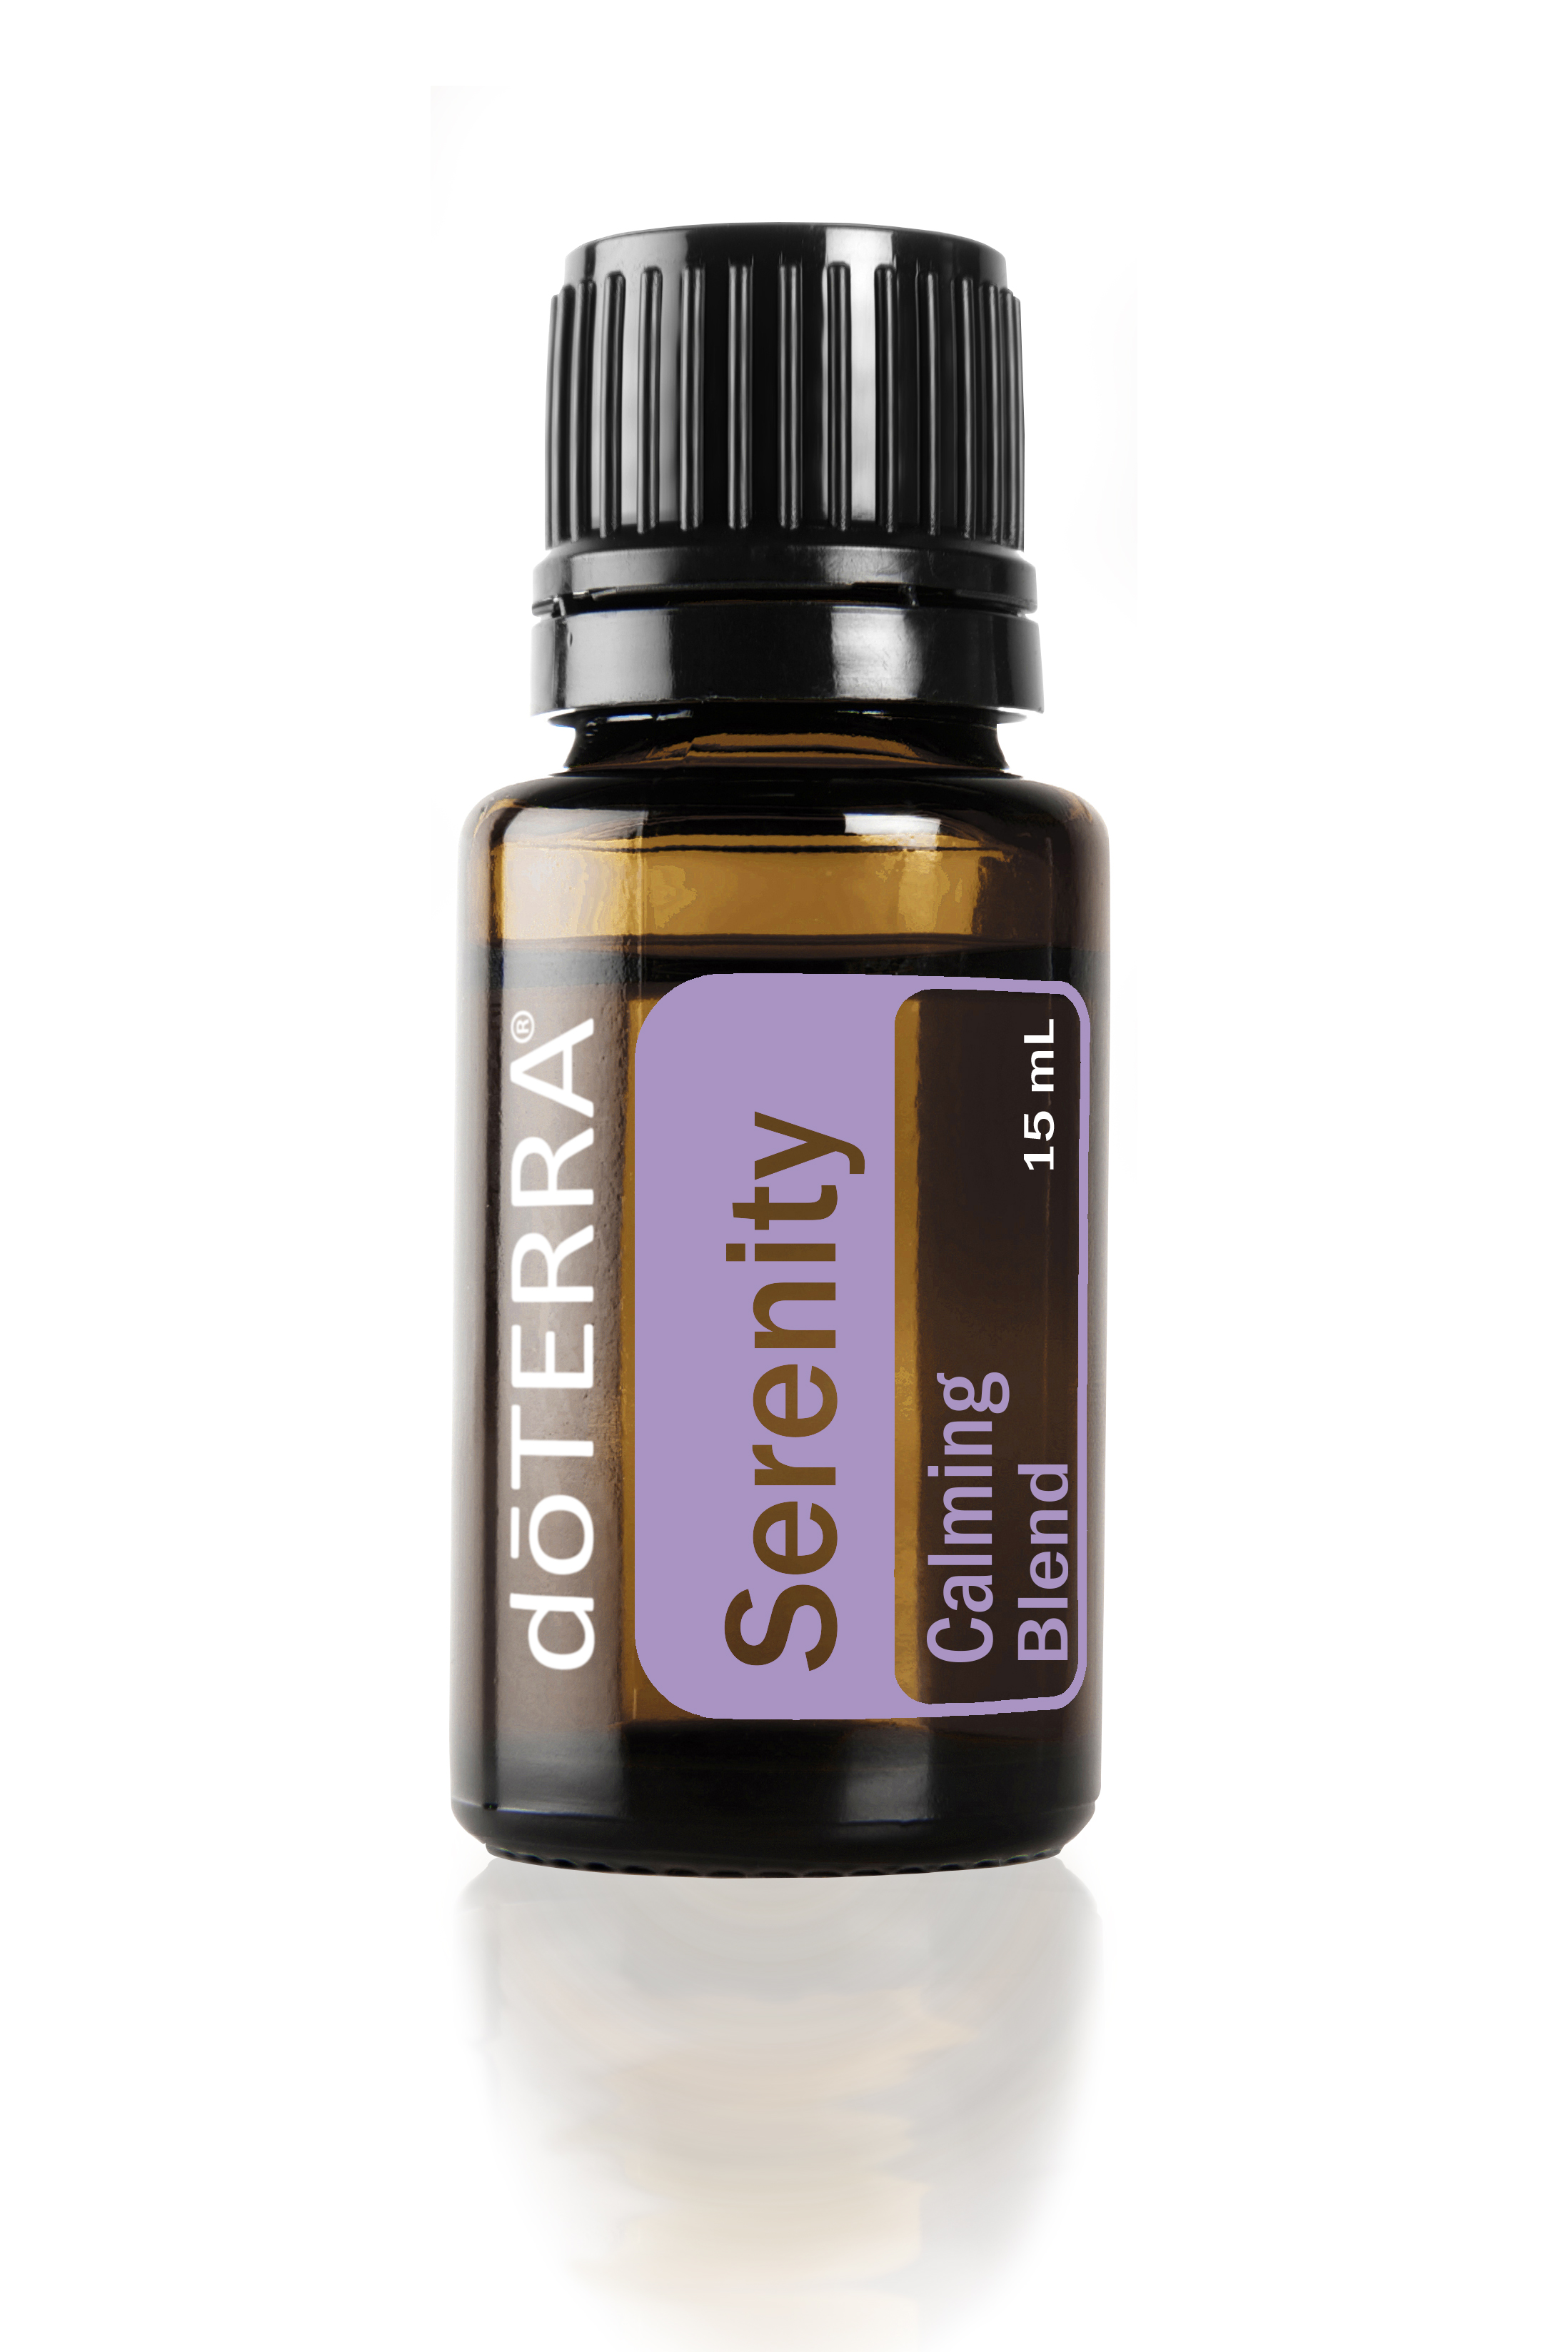 My #1 Calm - Promotes relaxation and a restful sleeping environmentLessens feelings of tension and calms emotions